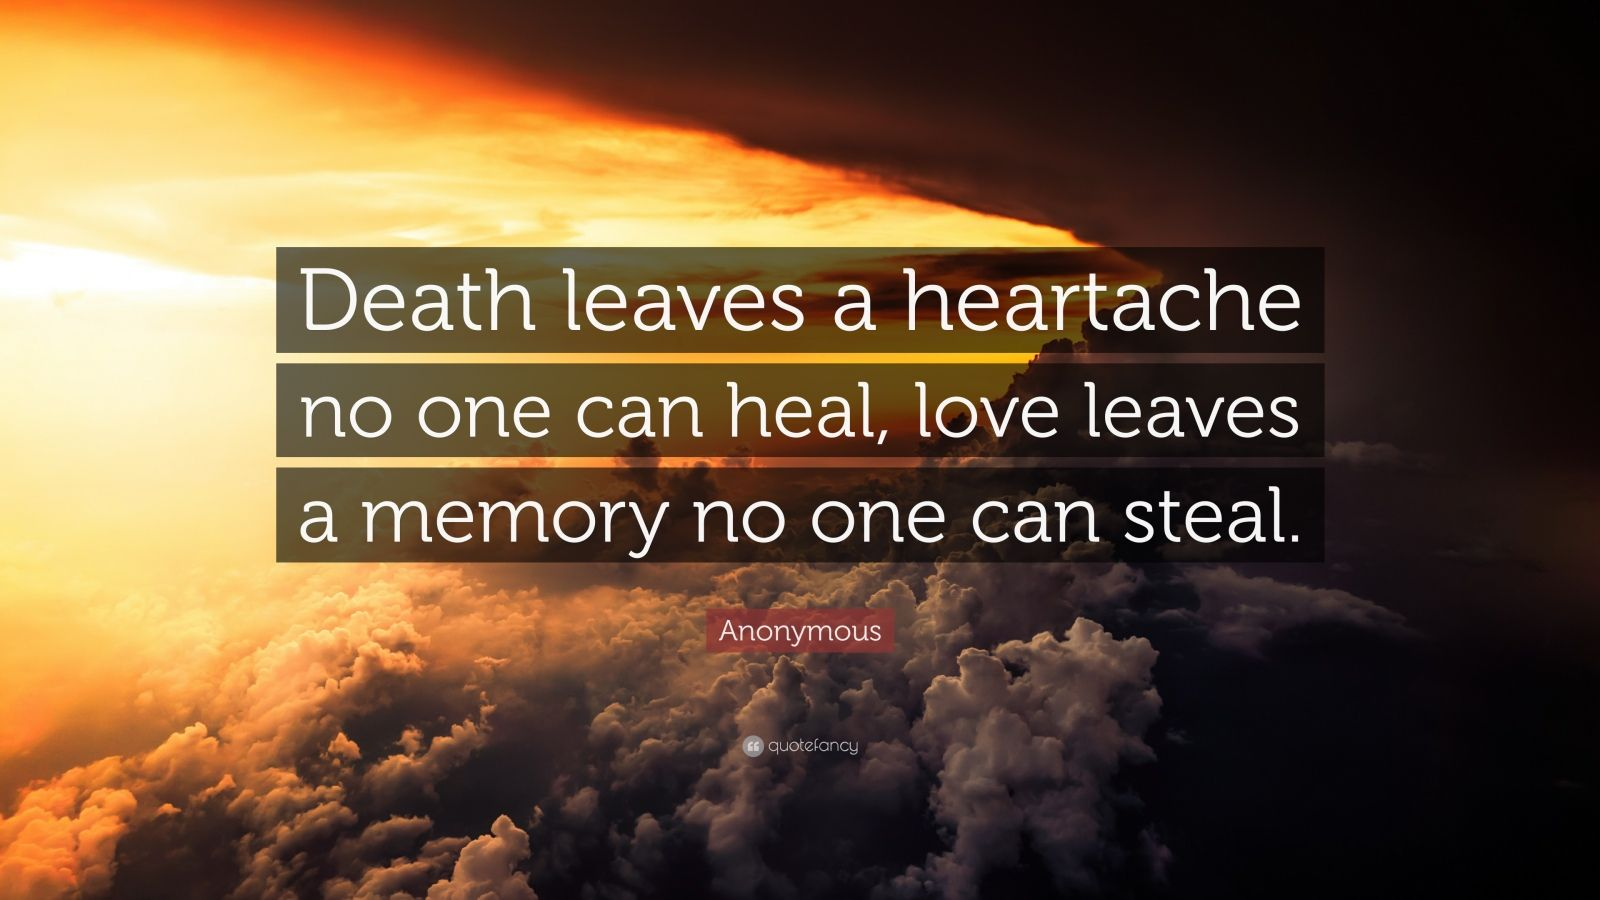 Love Inspiring Quotes Wallpaper Anonymous Quote Death Leaves A Heartache No One Can Heal